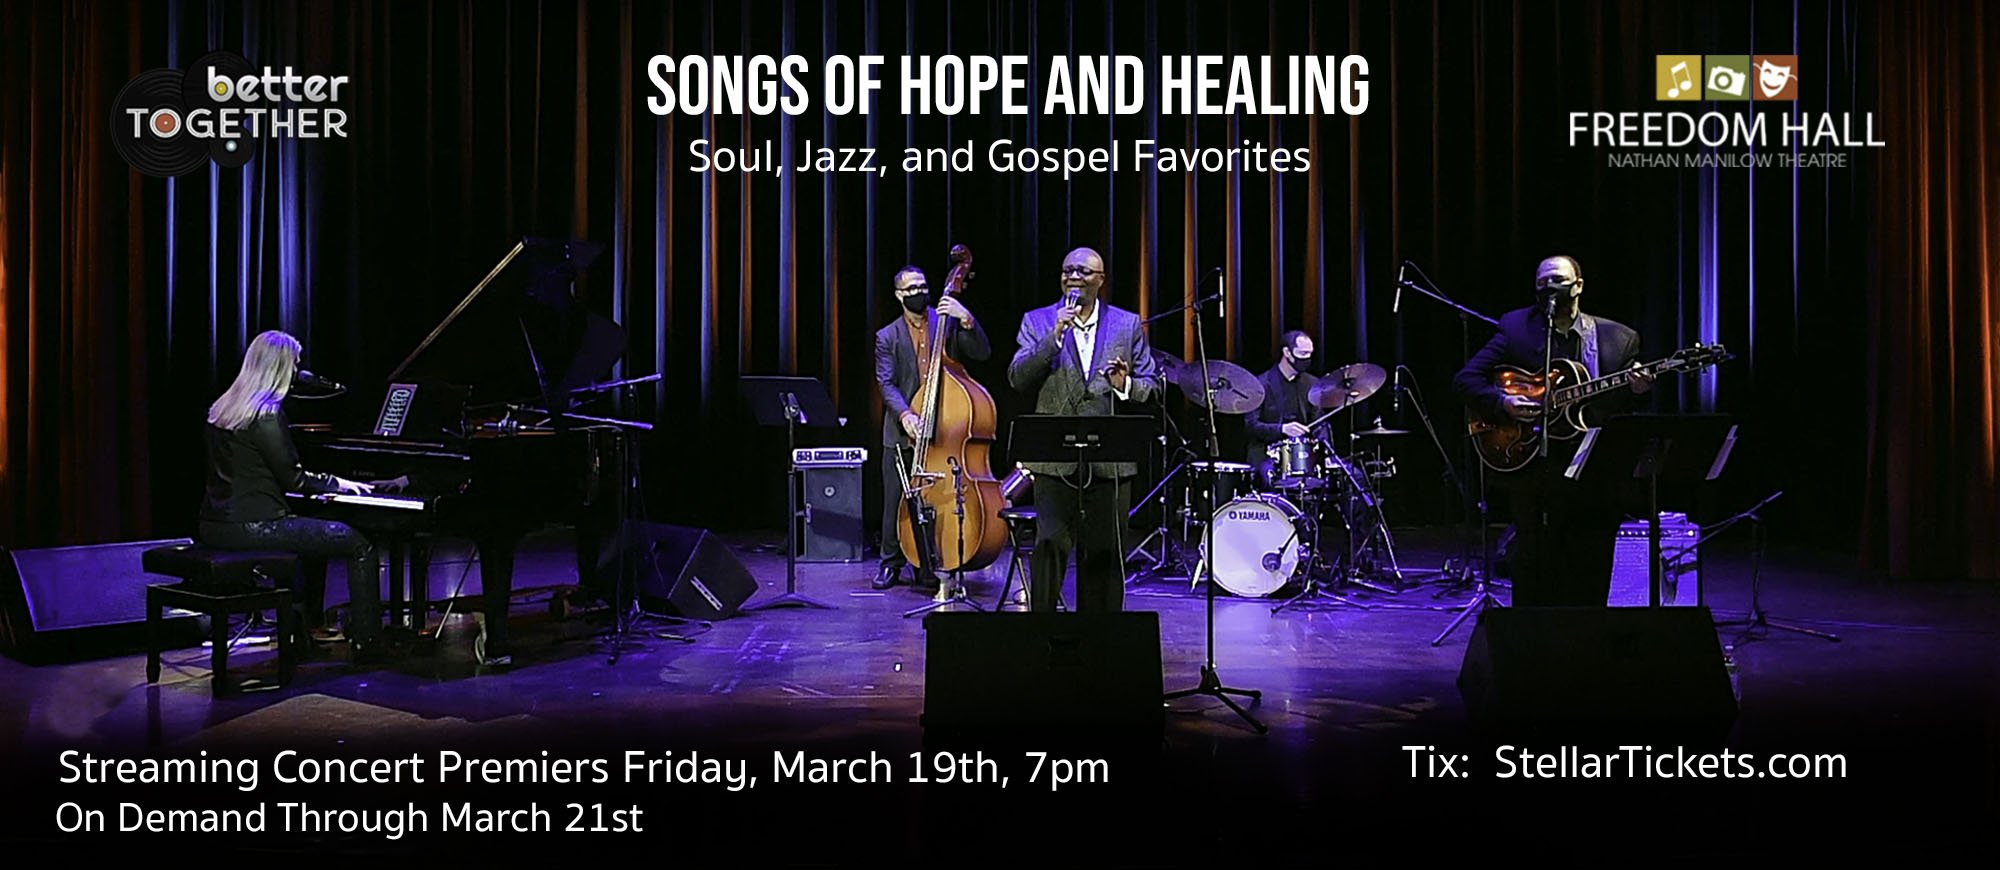 Better Together - Songs of Hope and Healing